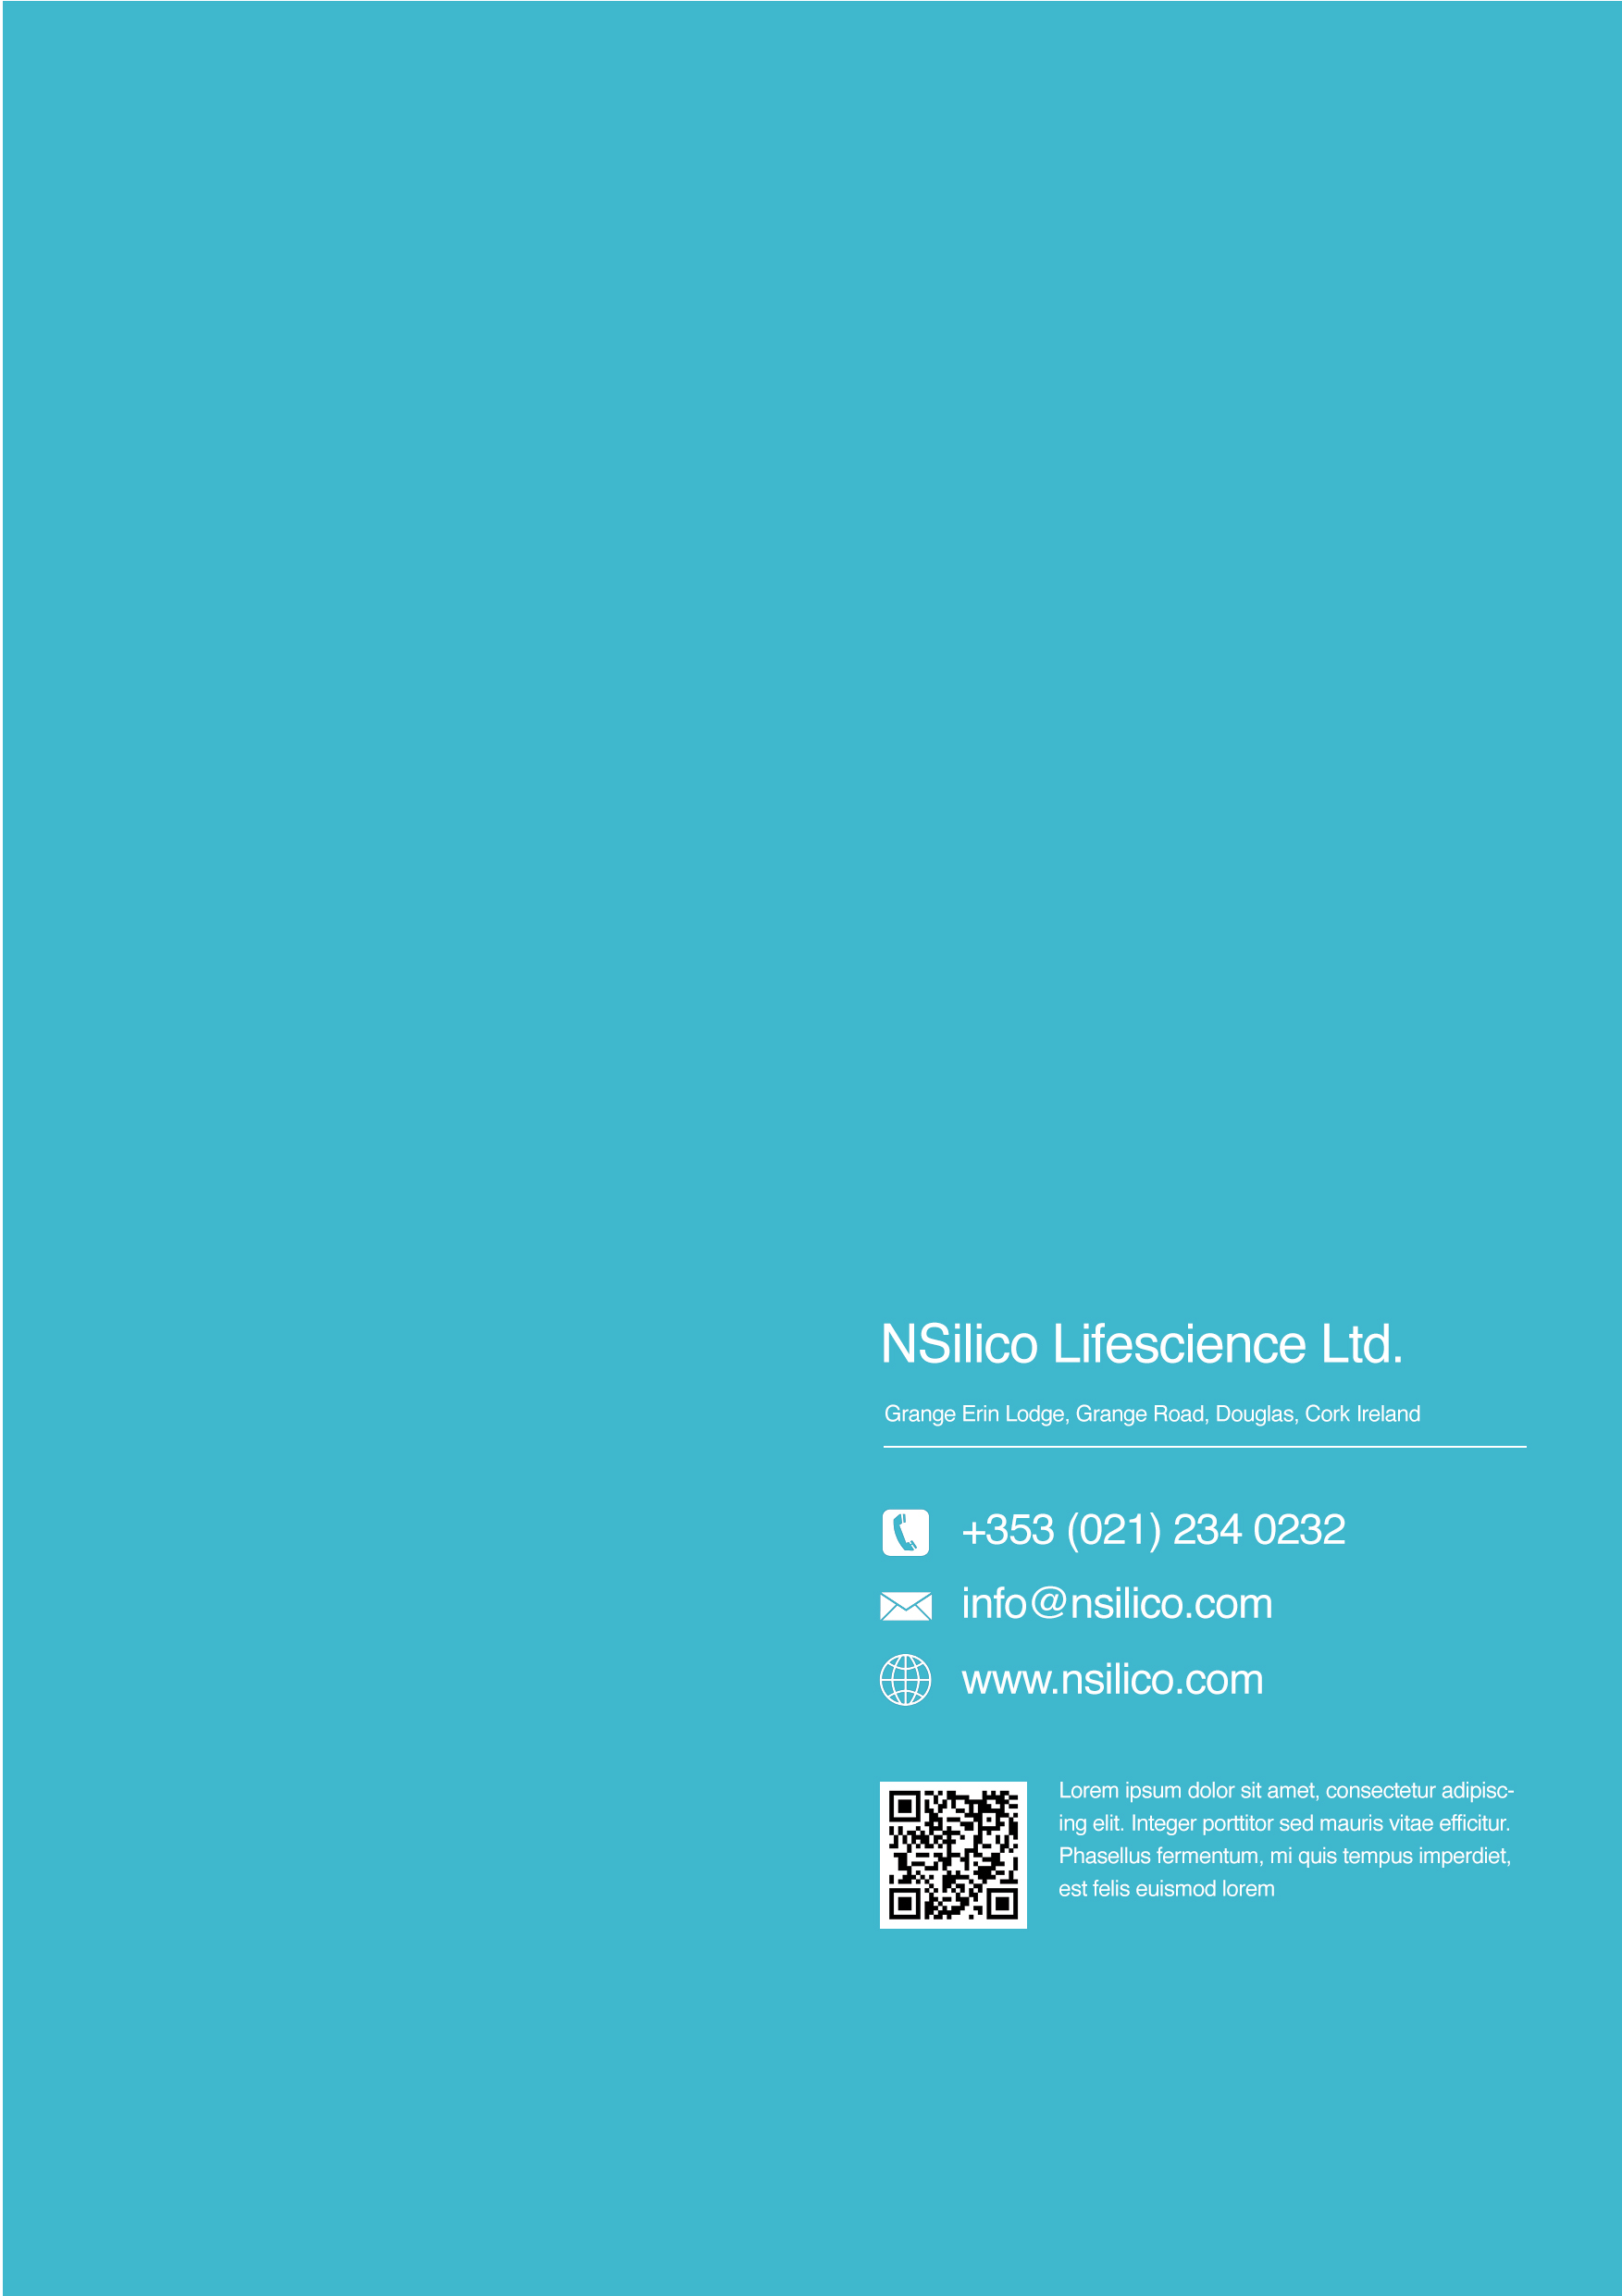 NSilico Lifescience Ltd.